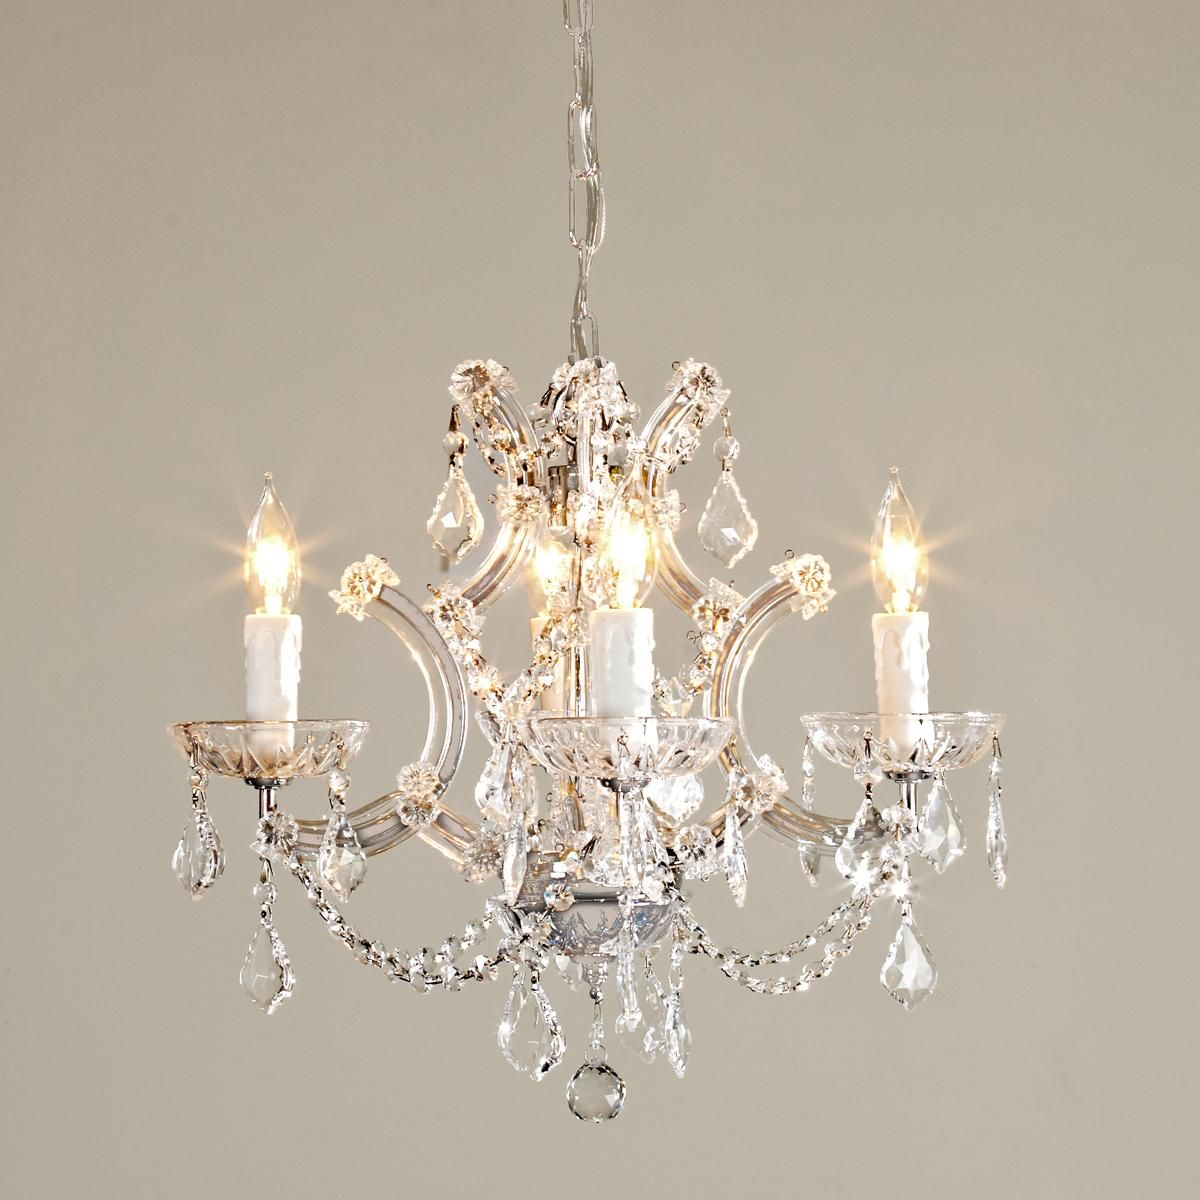 Round Crystal Chandelier Only Shades Of Light Round Crystal Chandelier Chandelier Bedroom Small Chandelier